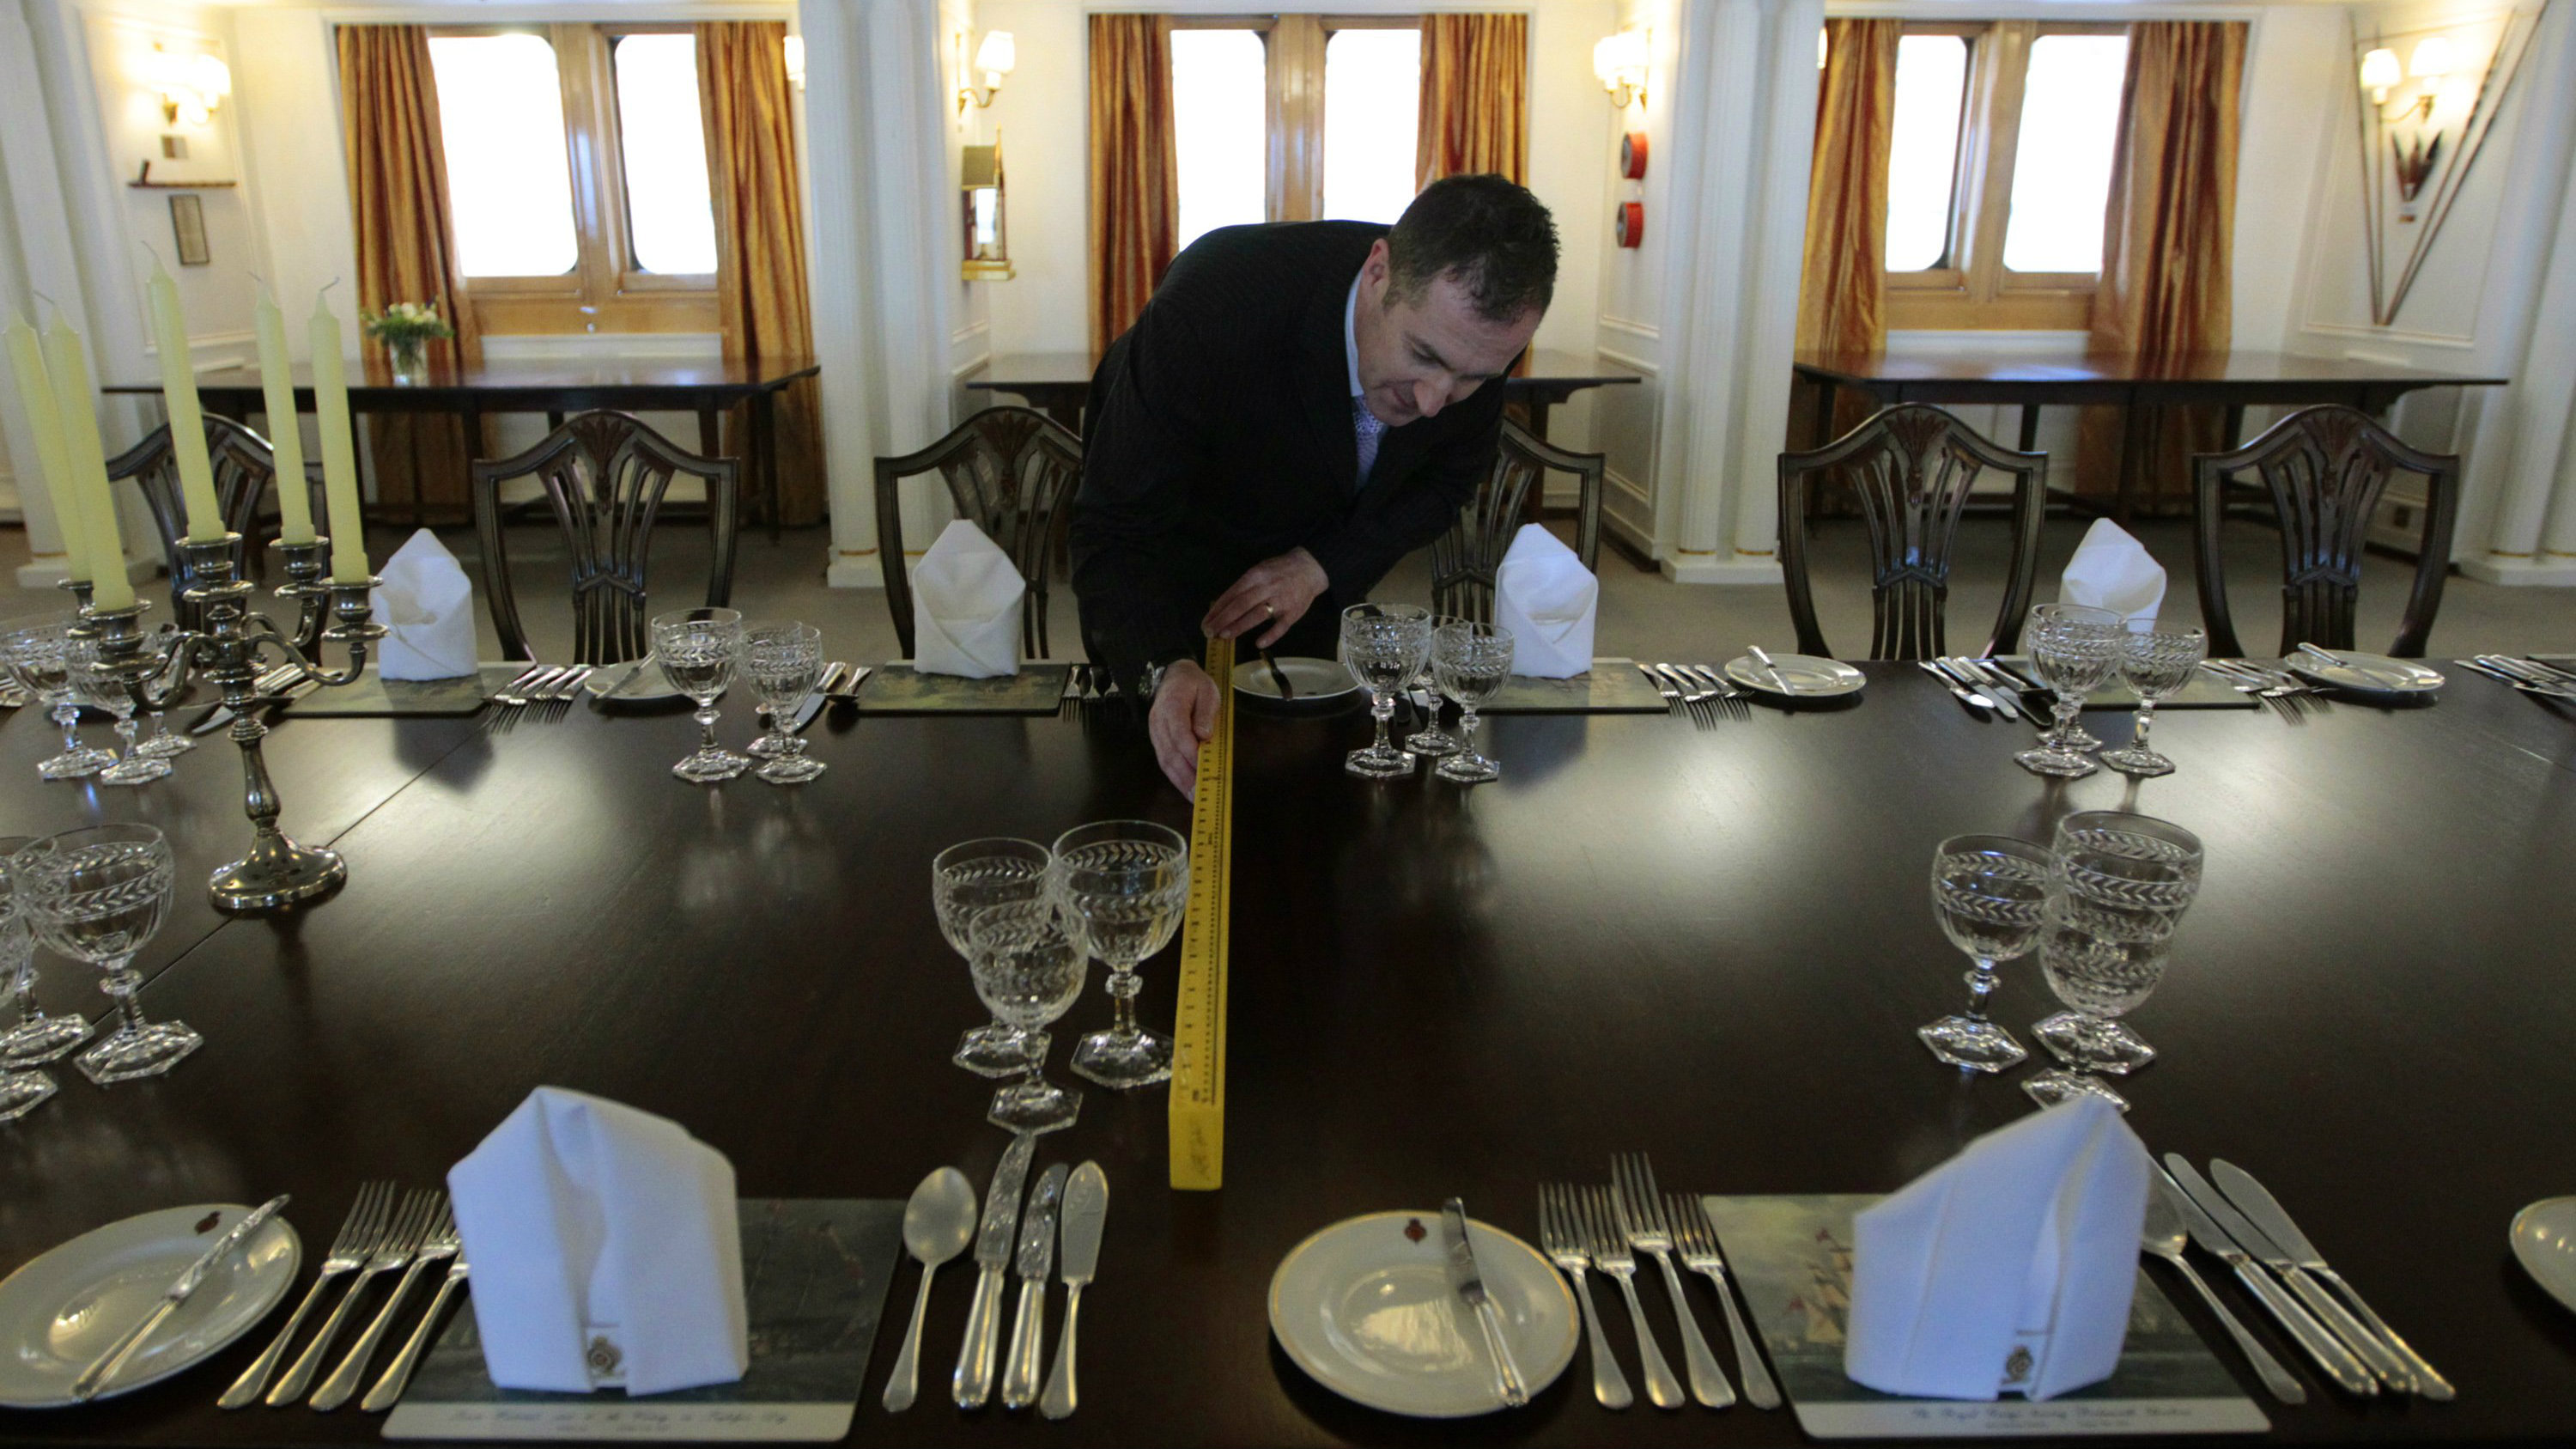 Fine dining manager Bruce MacBride checks the table settings in the dining room of the Royal Yacht Britannia in Edinburgh, Scotland January 31, 2012.